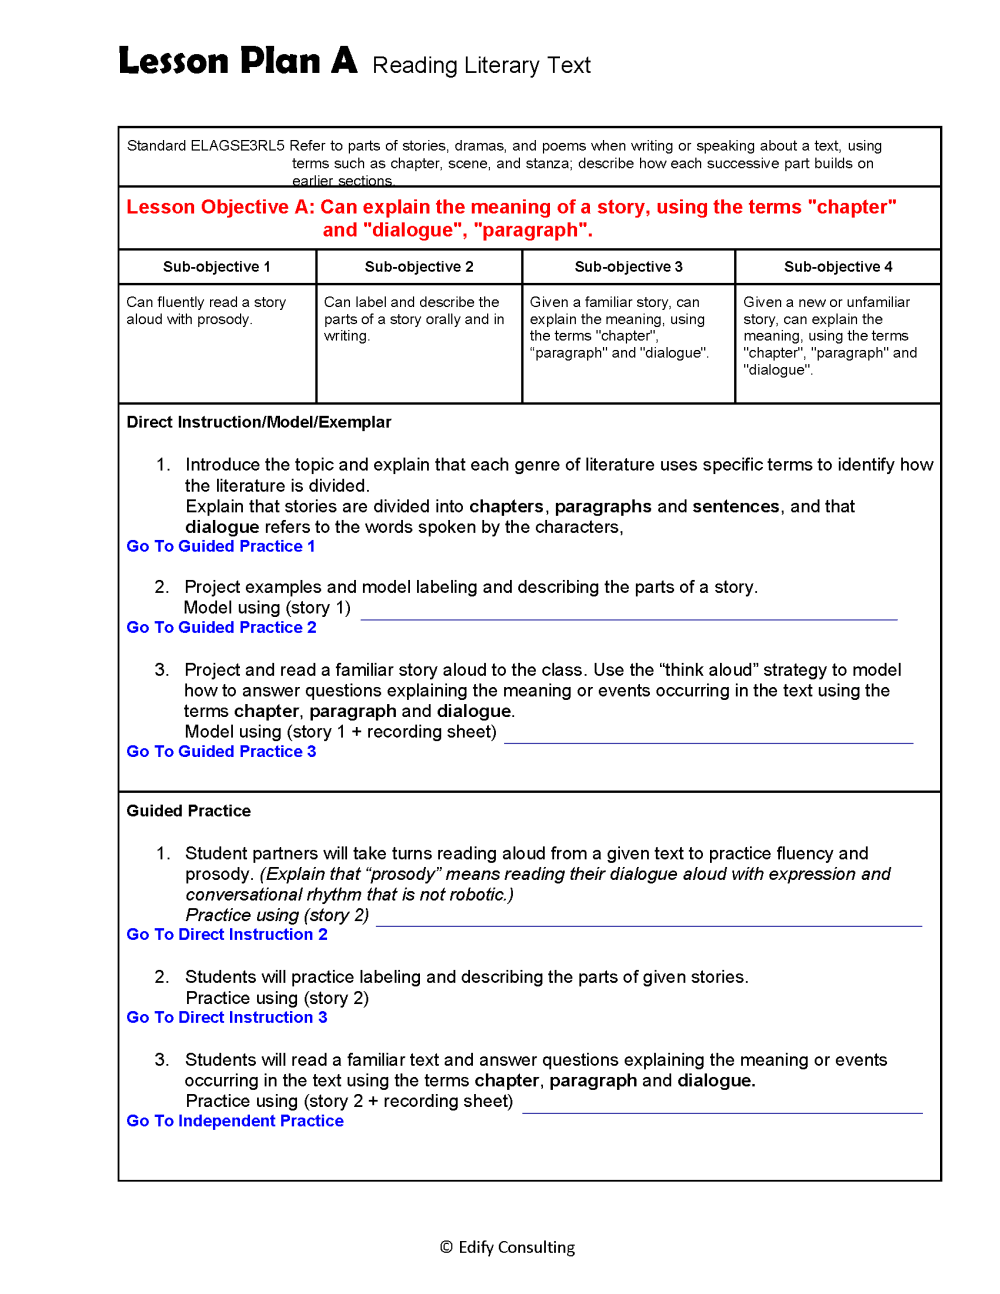 medium resolution of Georgia Lesson Plans ELAGSE3RL5 – ELA 3rd Grade (5 Lesson Plans) –  ShopDollar.com: Online Shopping for Teachers Saving on Classroom Supplies